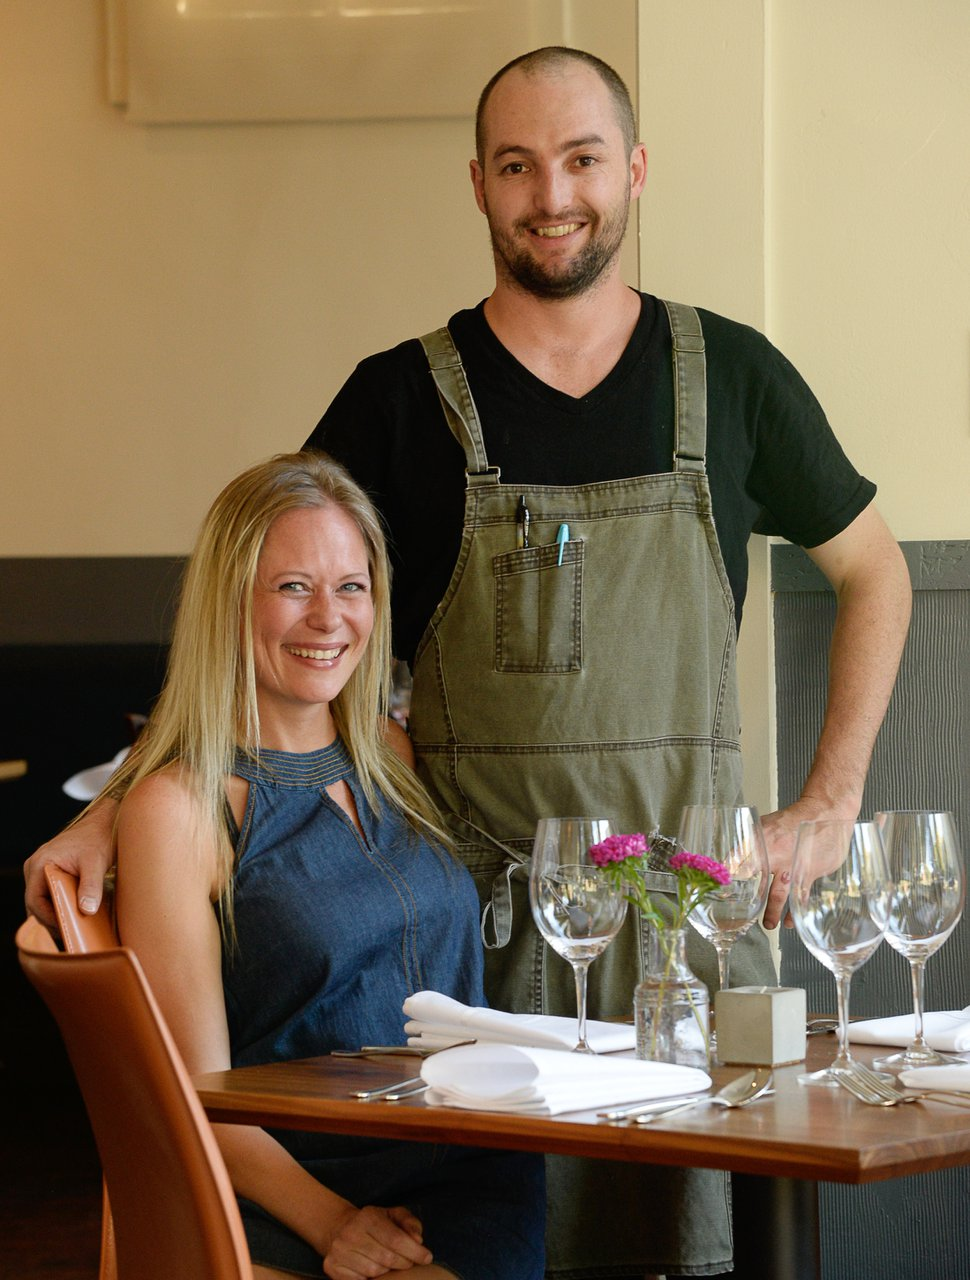 (Francisco Kjolseth | The Salt Lake Tribune) Angelena and Andrew Fuller, owners and operators of Oquirrh, a new fine-dining restaurant in downtown Salt Lake City.